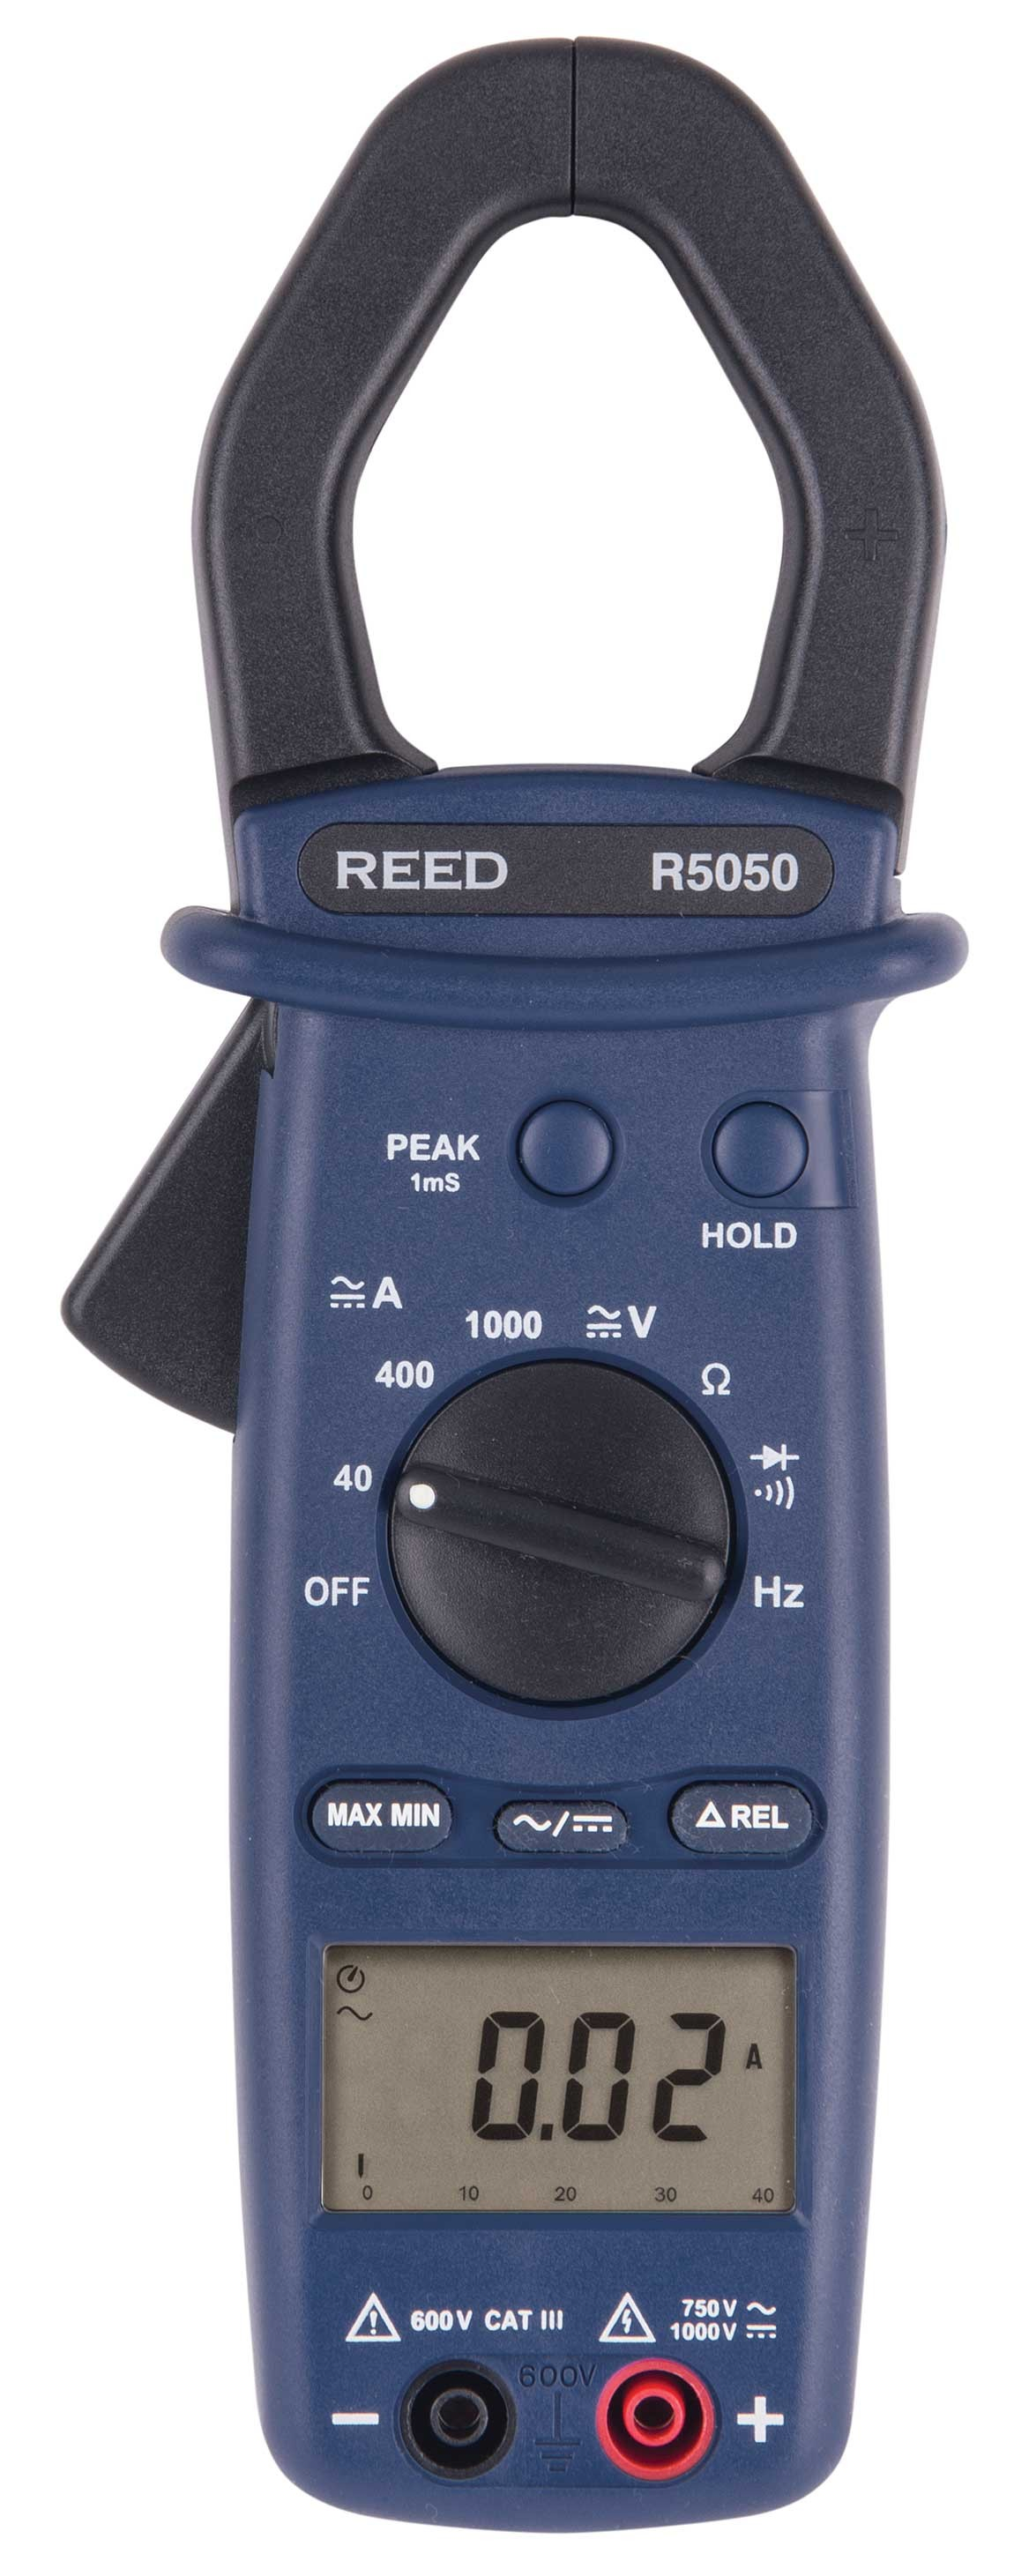 REED R5050 1000A True RMS AC/DC Clamp Meter-